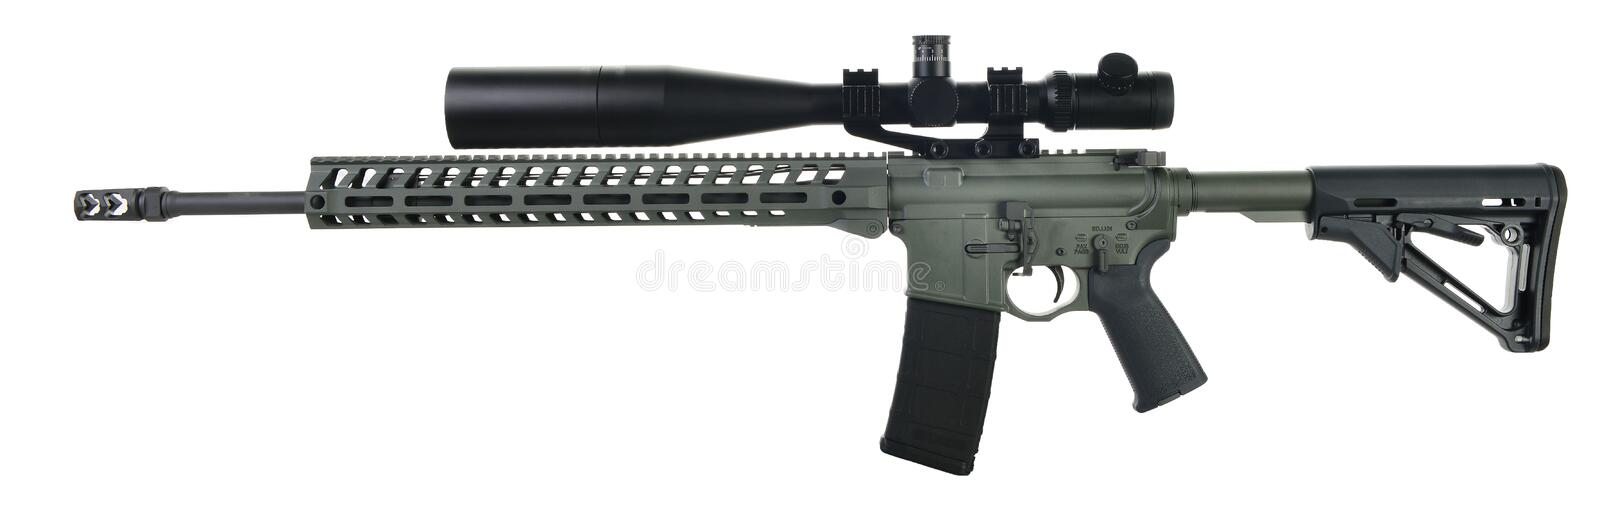 Left side AR15 rifle with foliage green paint royalty free stock images